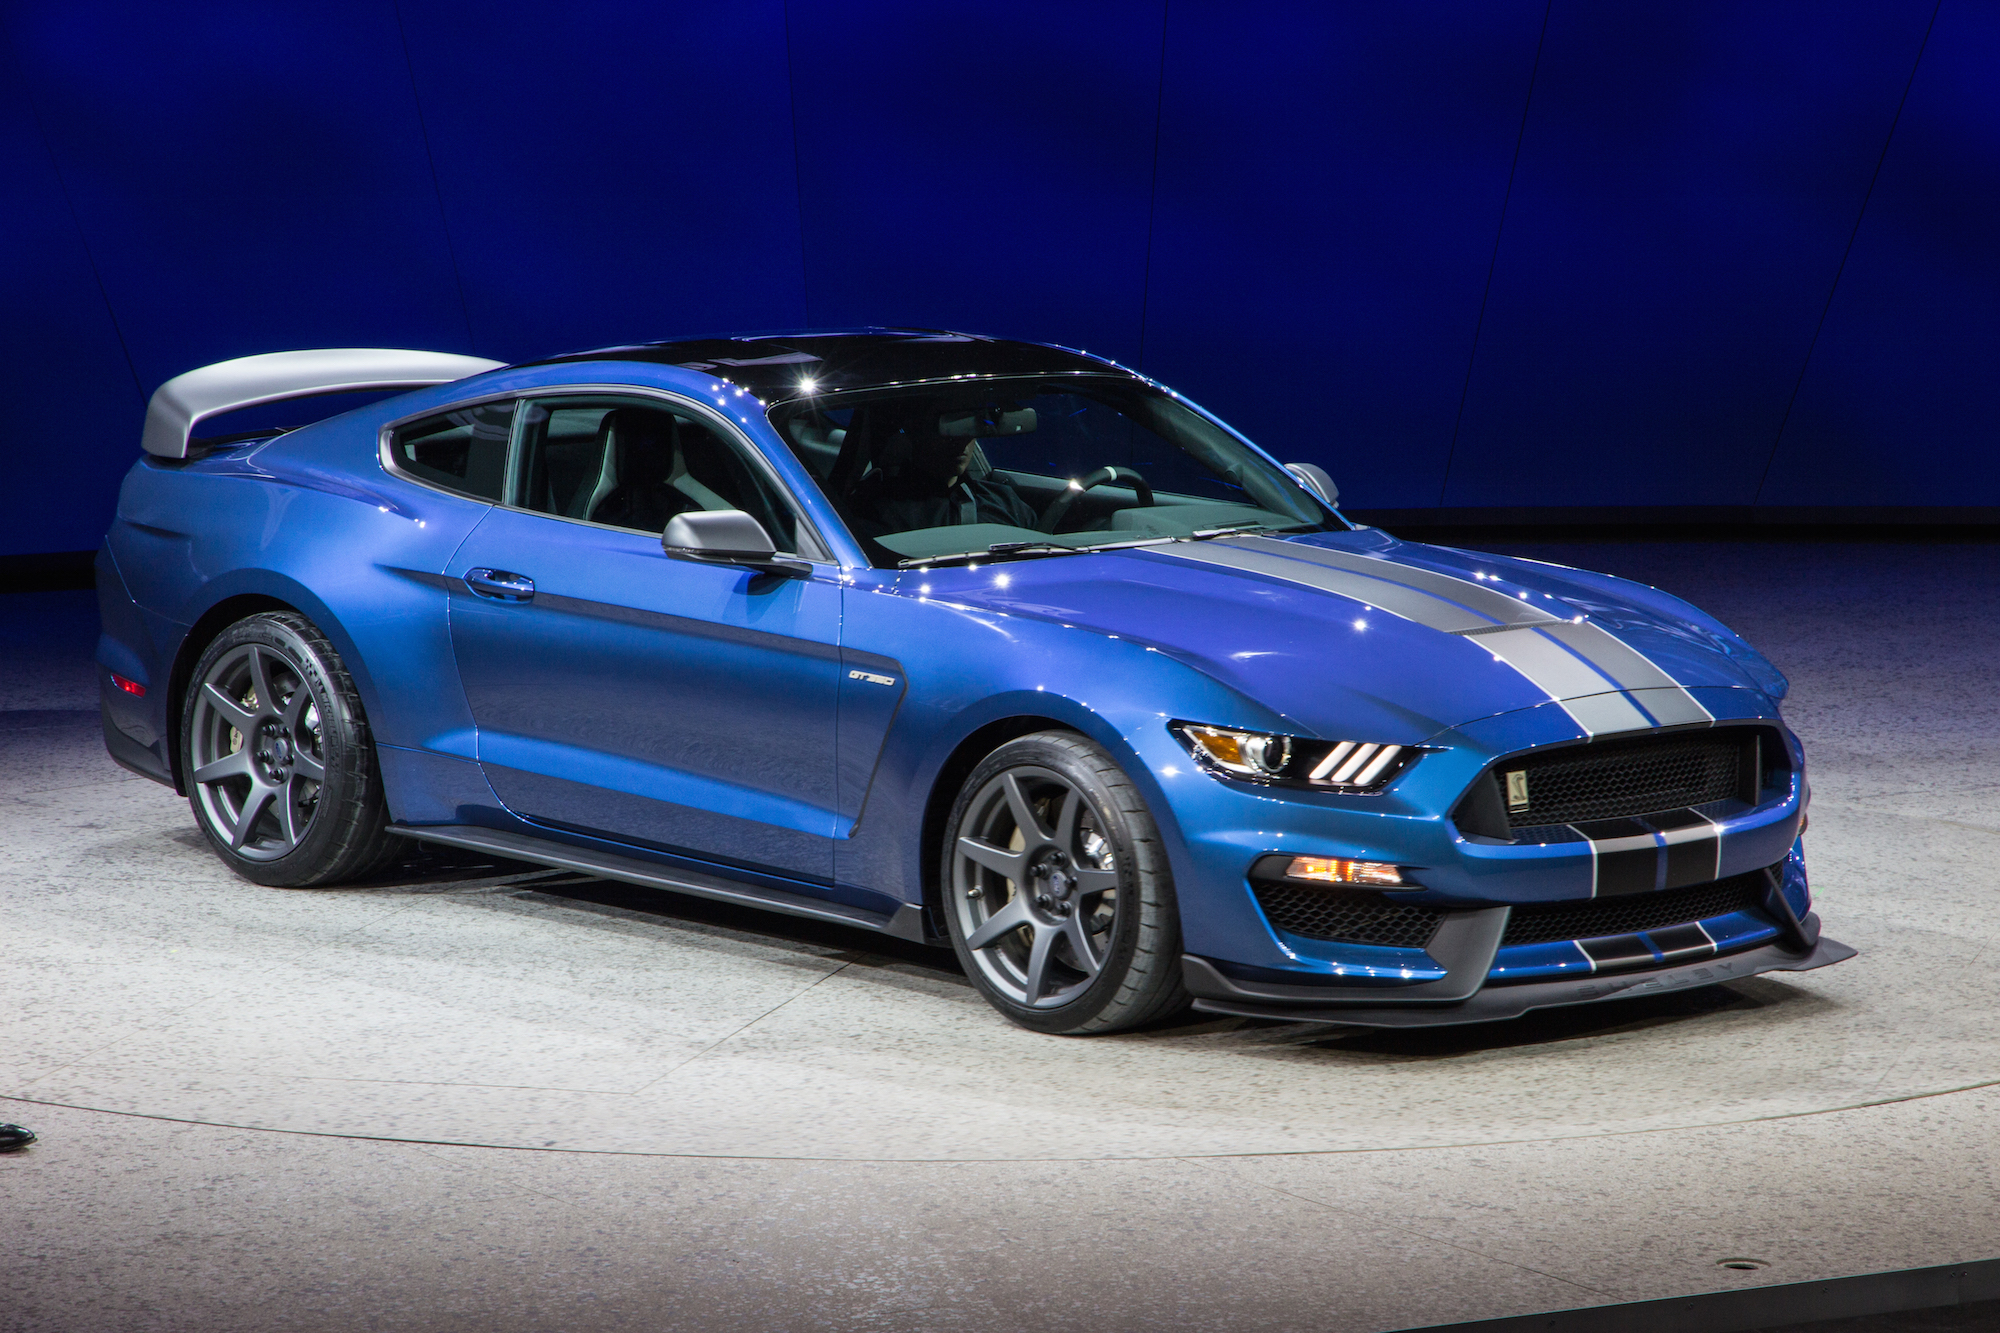 2016 Ford Mustang Shelby GT350 HD Wallpapers 2000x1333